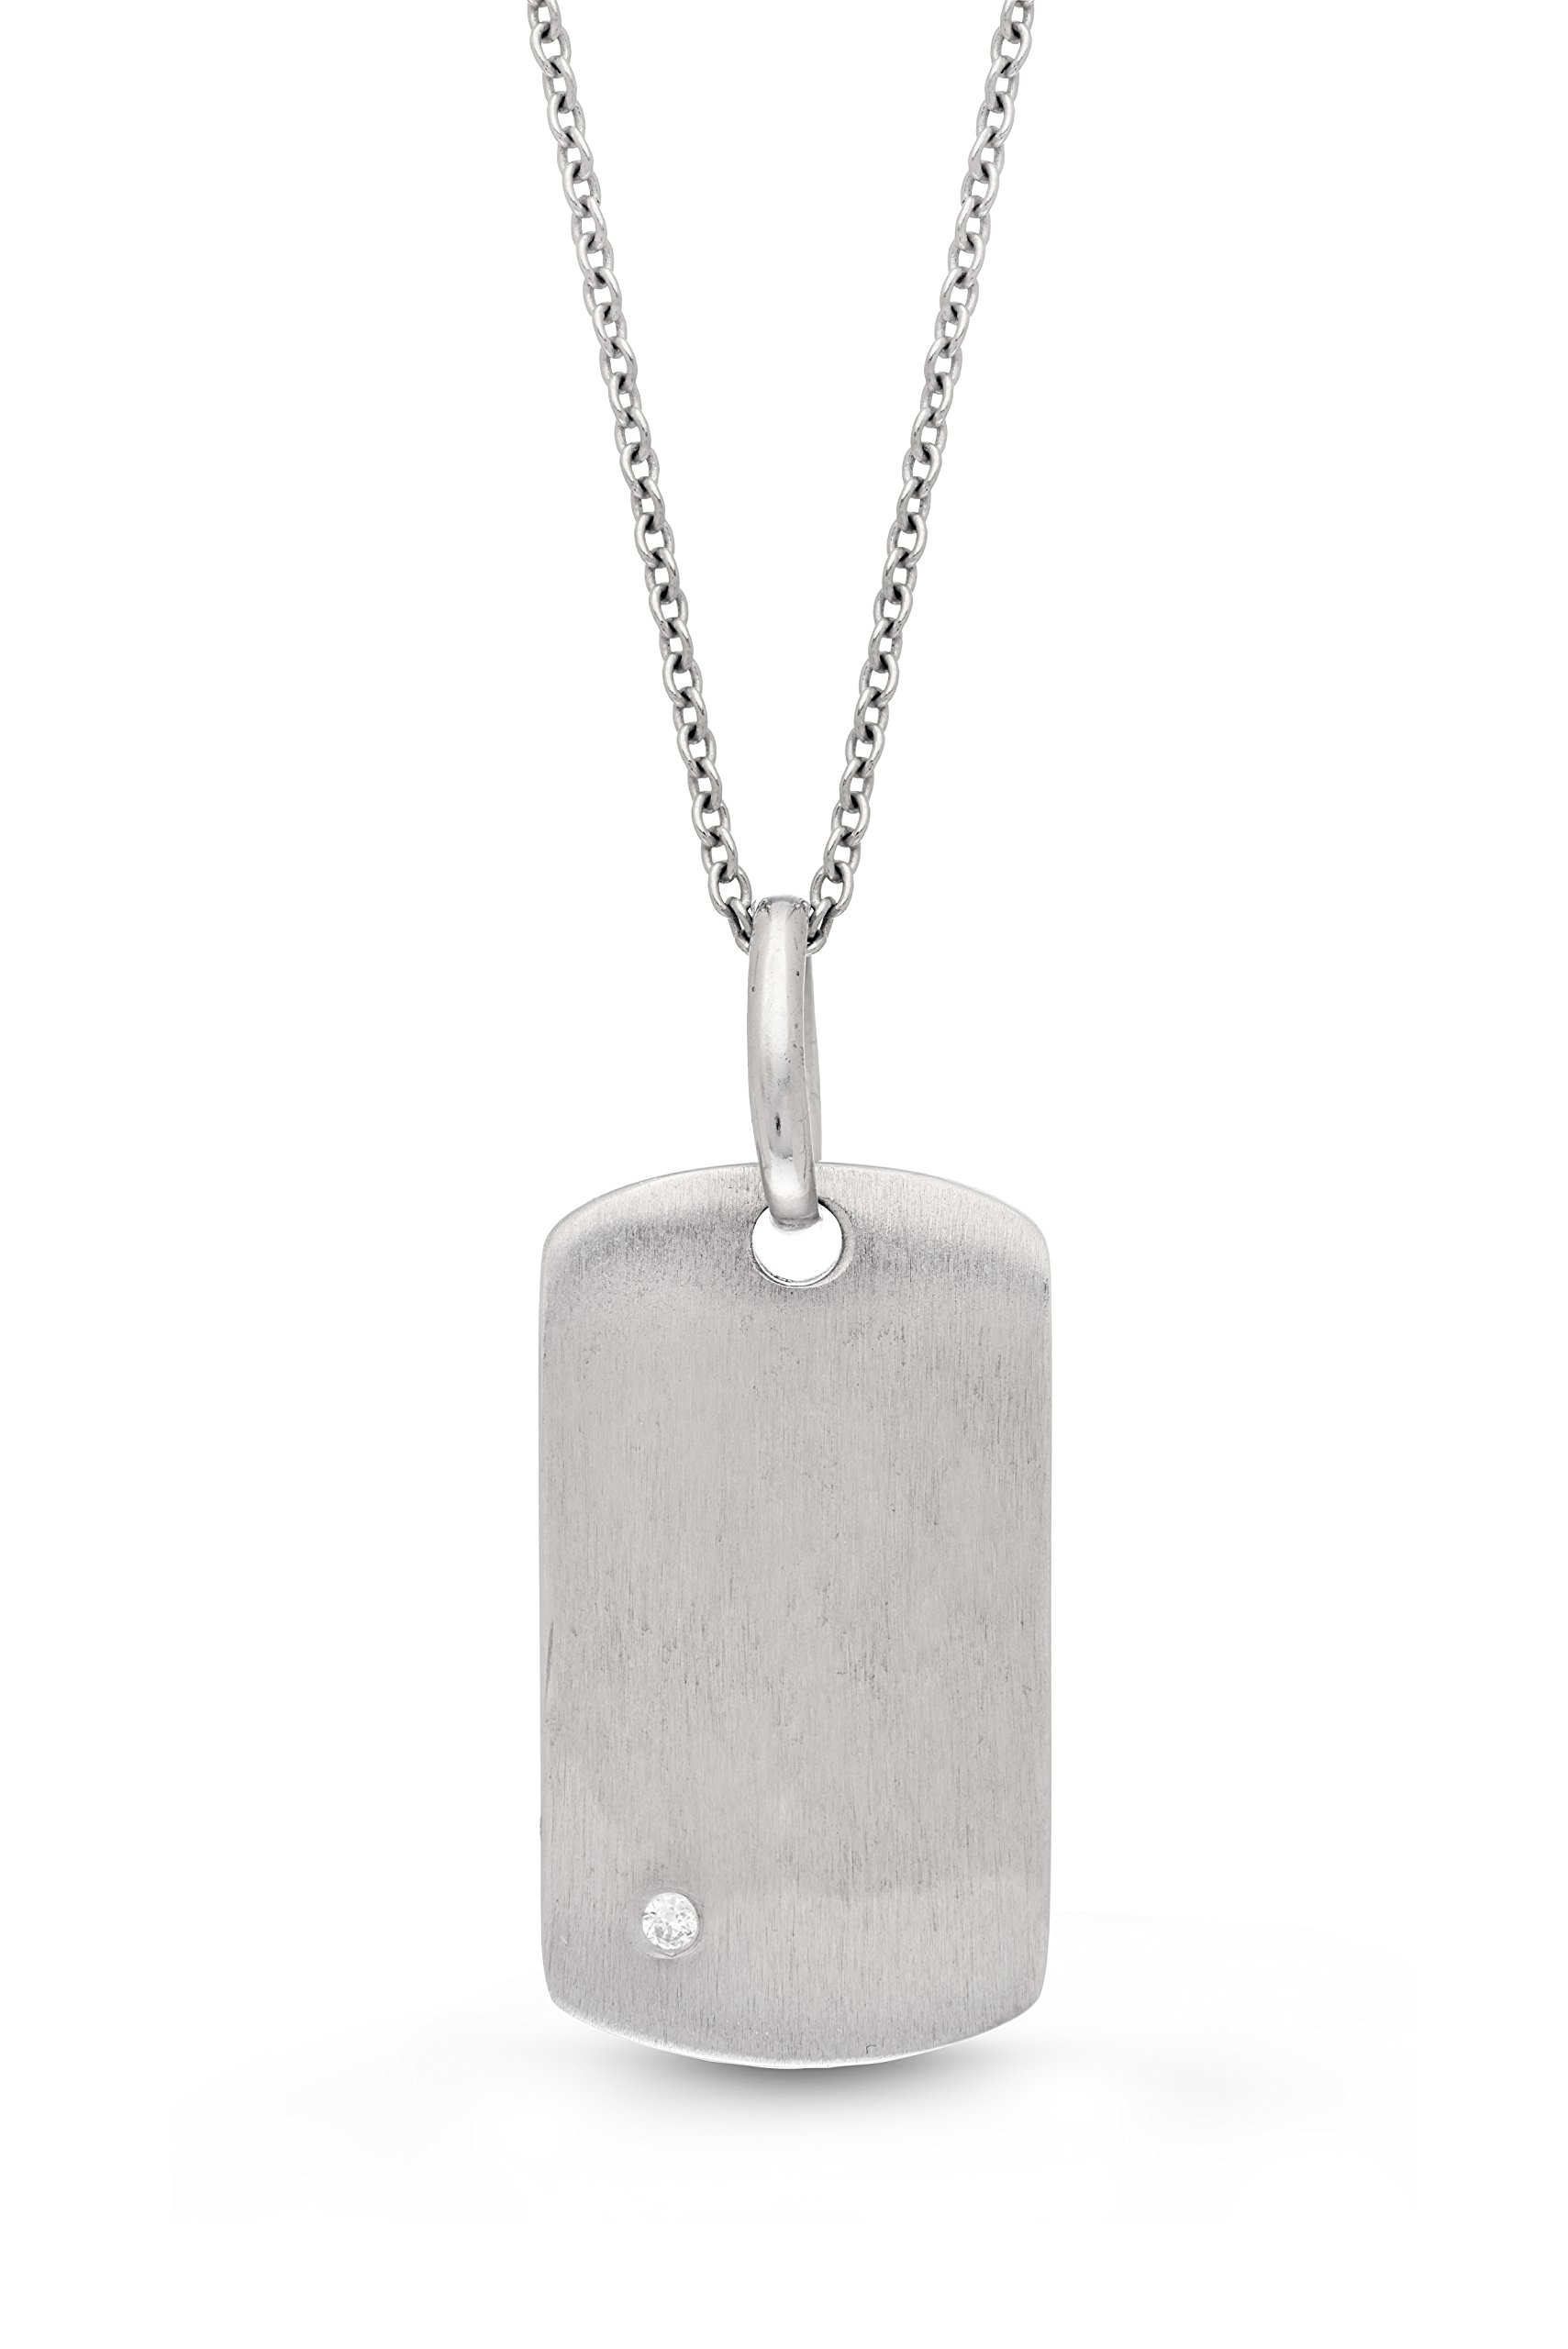 Sterling Silver-White Topaz-Dog Tag-Custom Photo Locket Necklace-36-inch chain-The Annie by With You Lockets